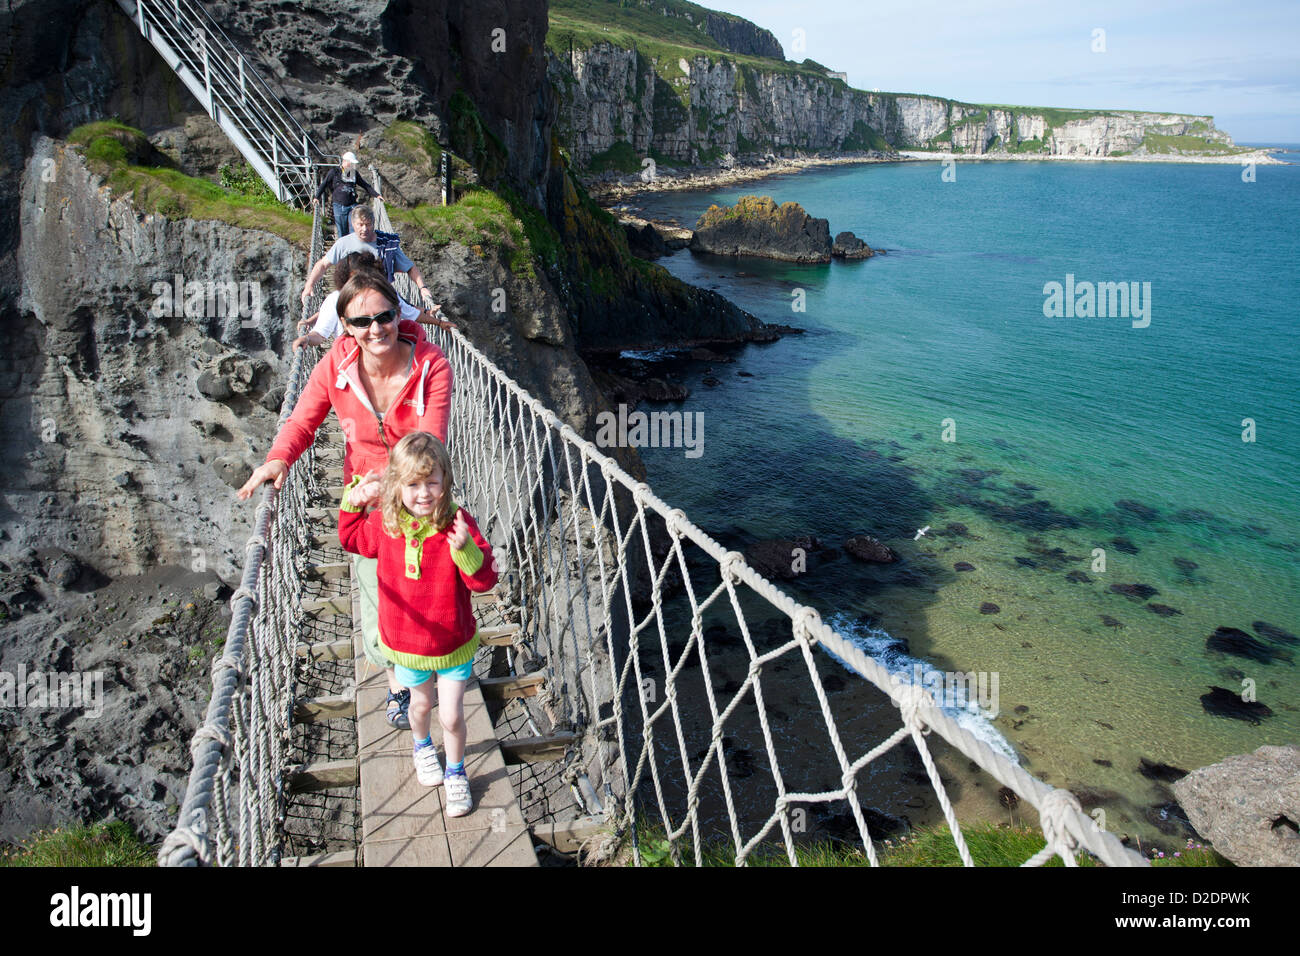 Woman and child crossing Carrick-a-rede Rope Bridge, County Antrim, Northern Ireland. - Stock Image